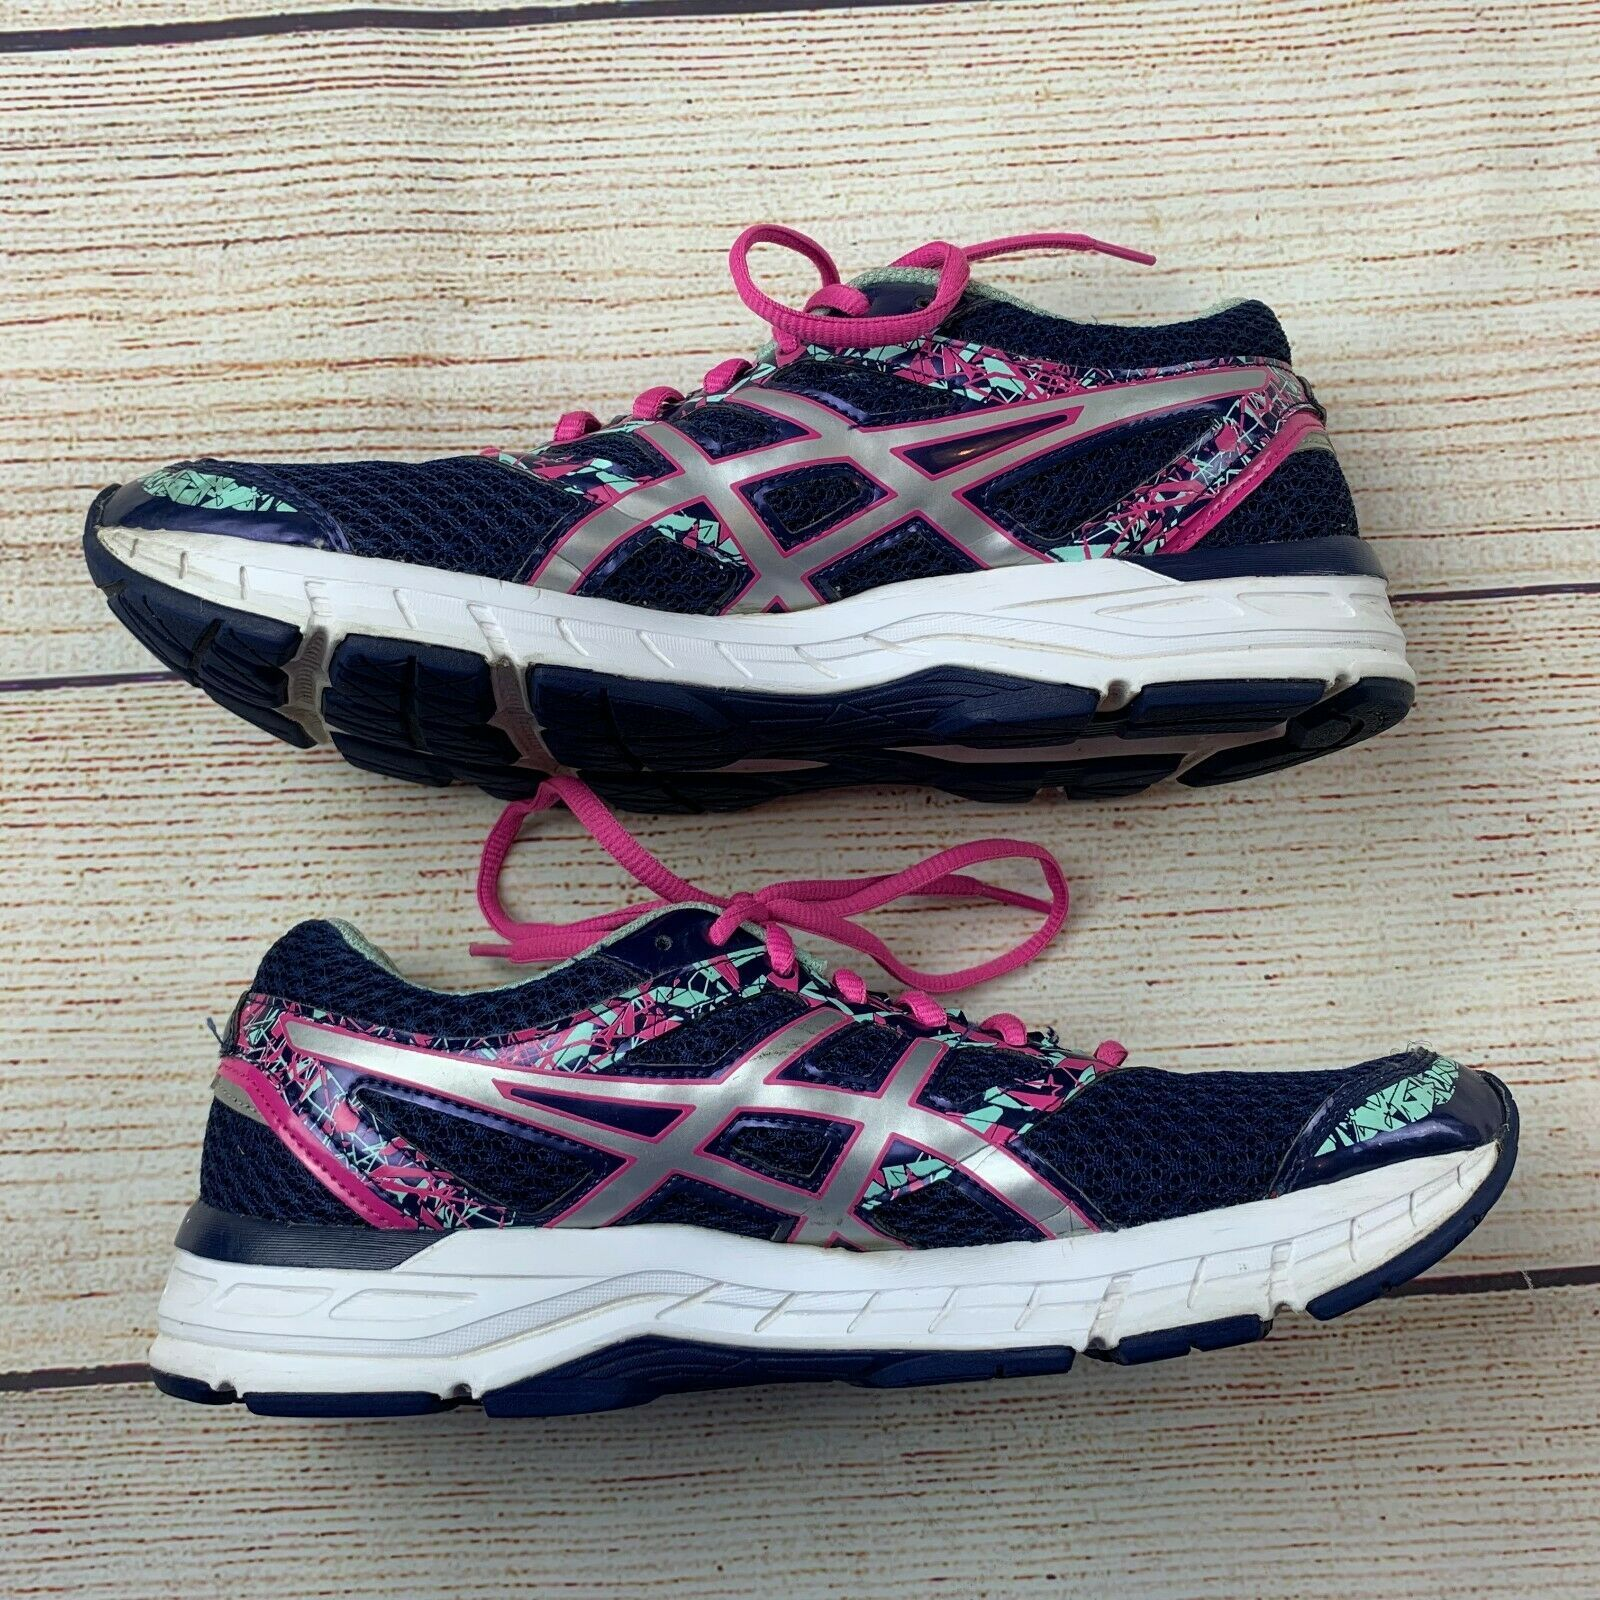 Asics womens Gel Excite 4 Navy Pink Running Shoes Sneakers 10/ 42 EUC image 5